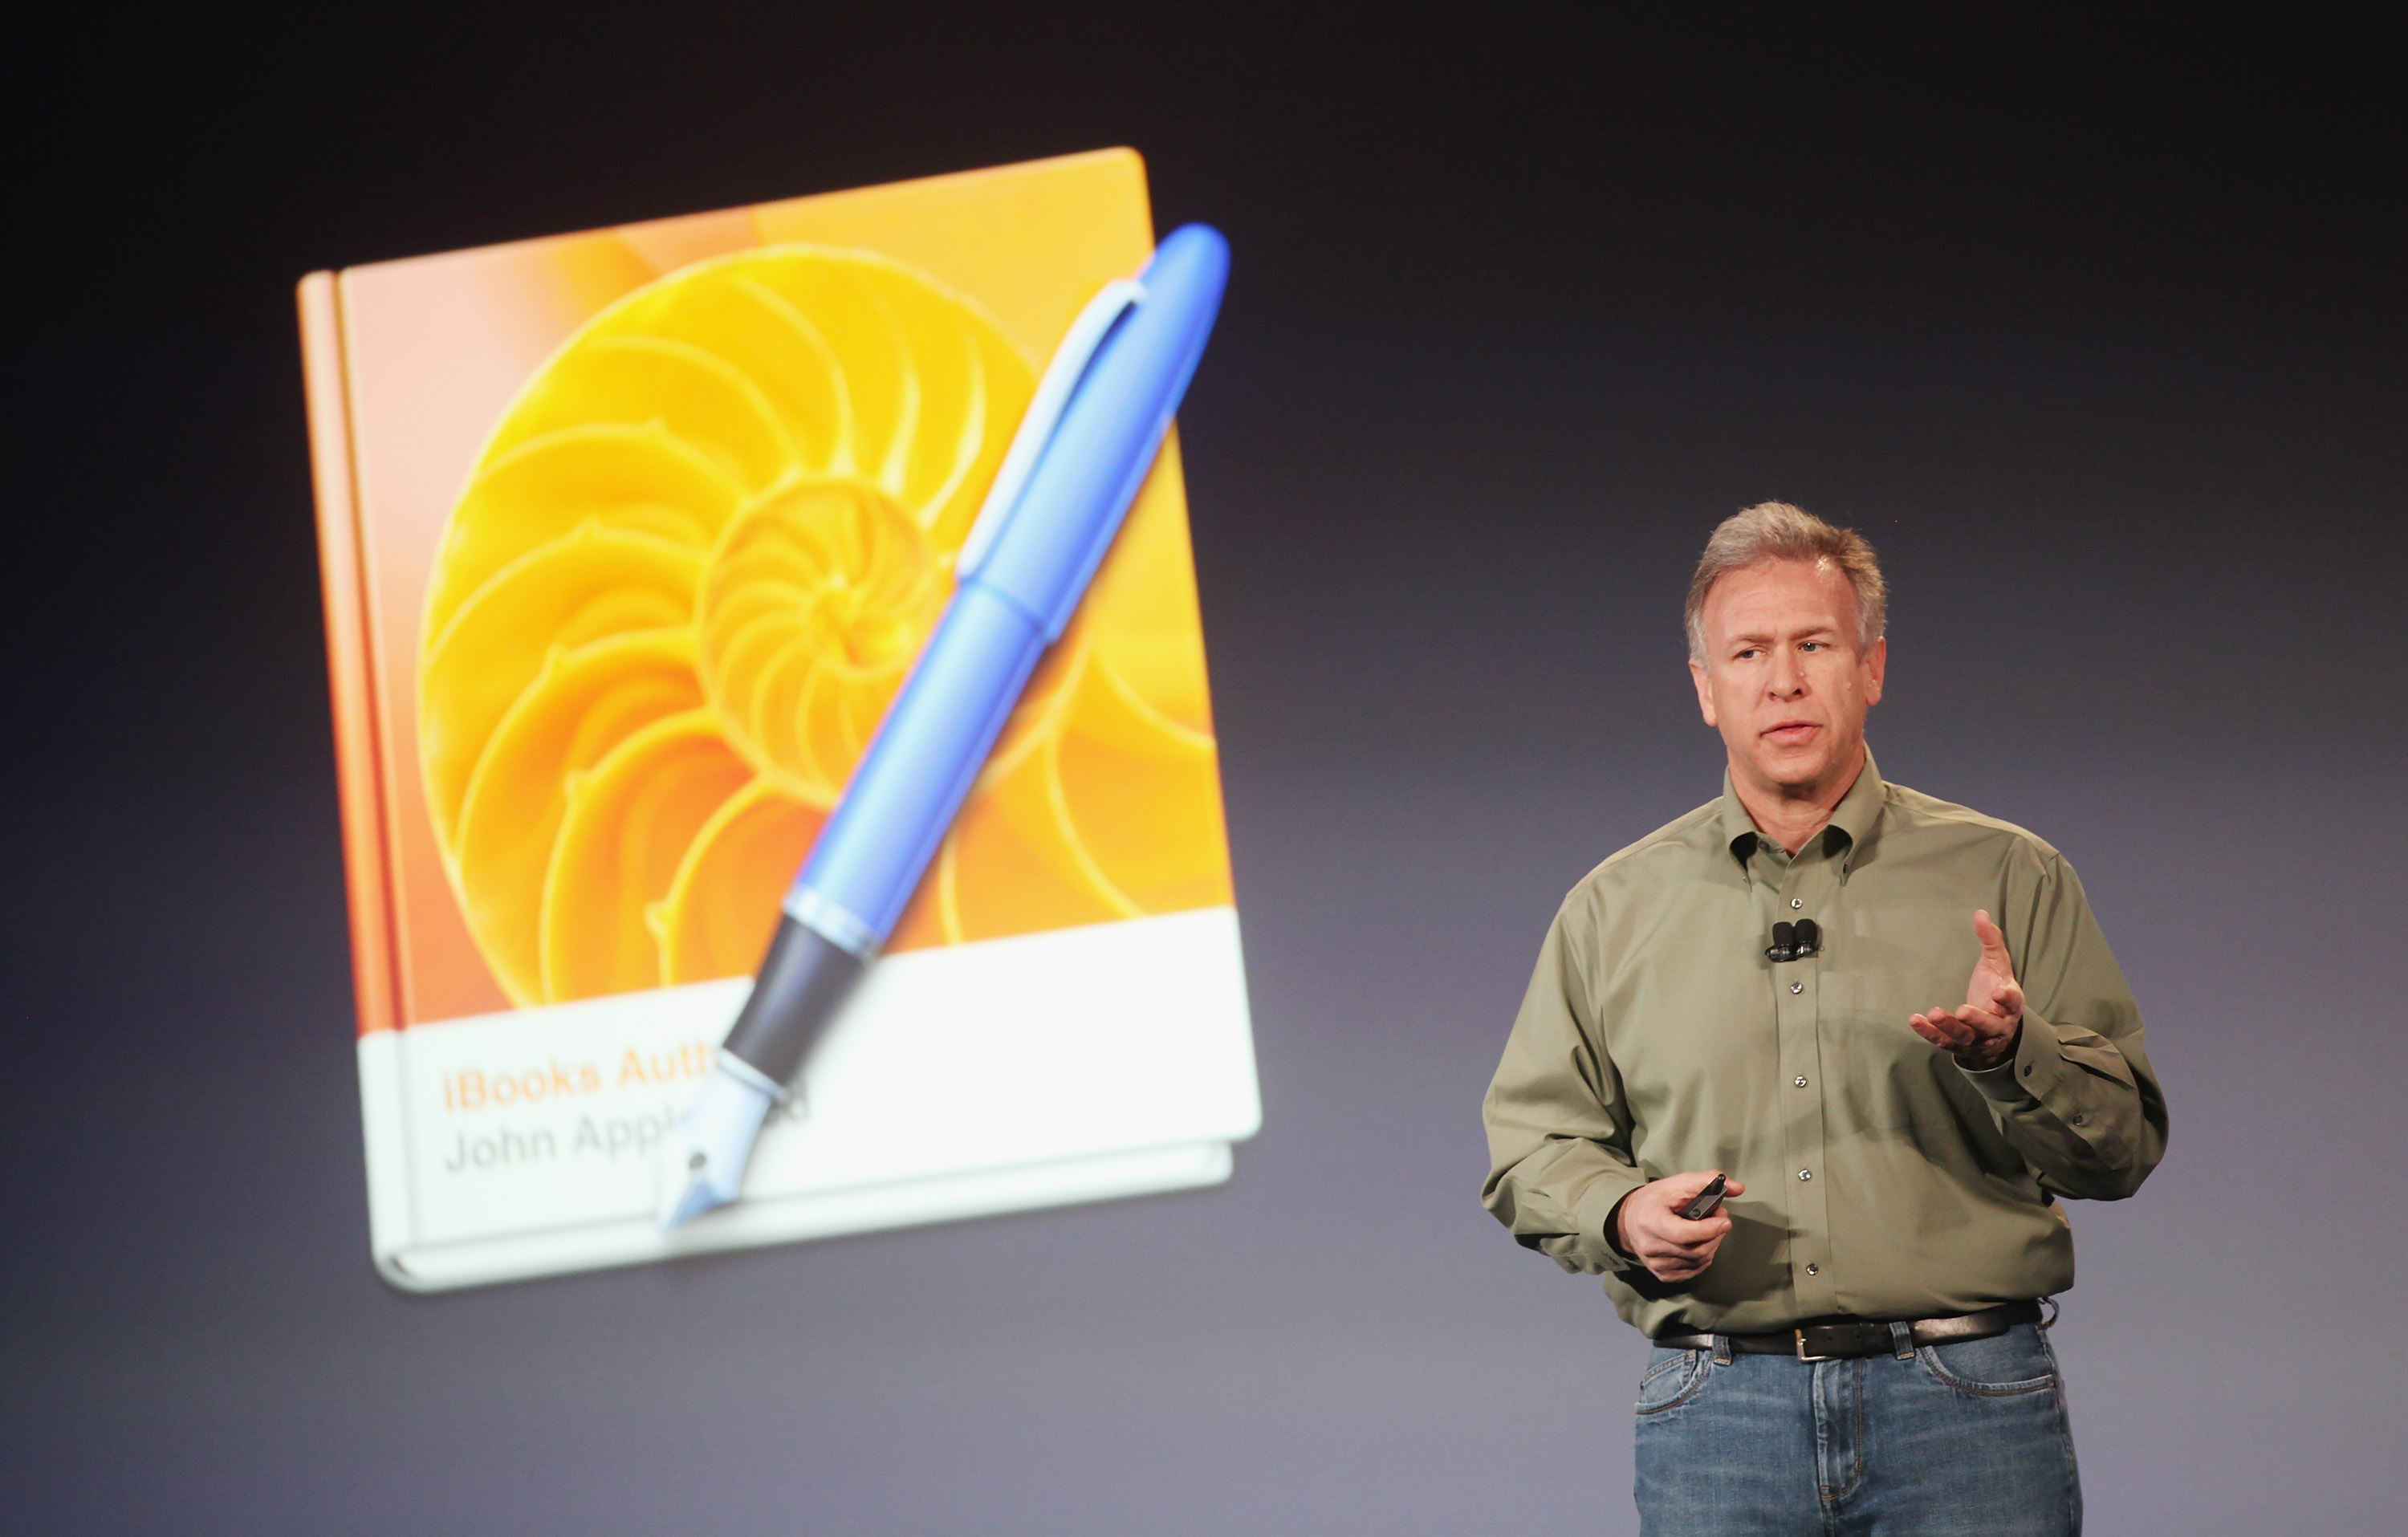 Mention of iBooks 3.0 discovered in recent iTunes listing, supporting books focus for iPad mini event ...